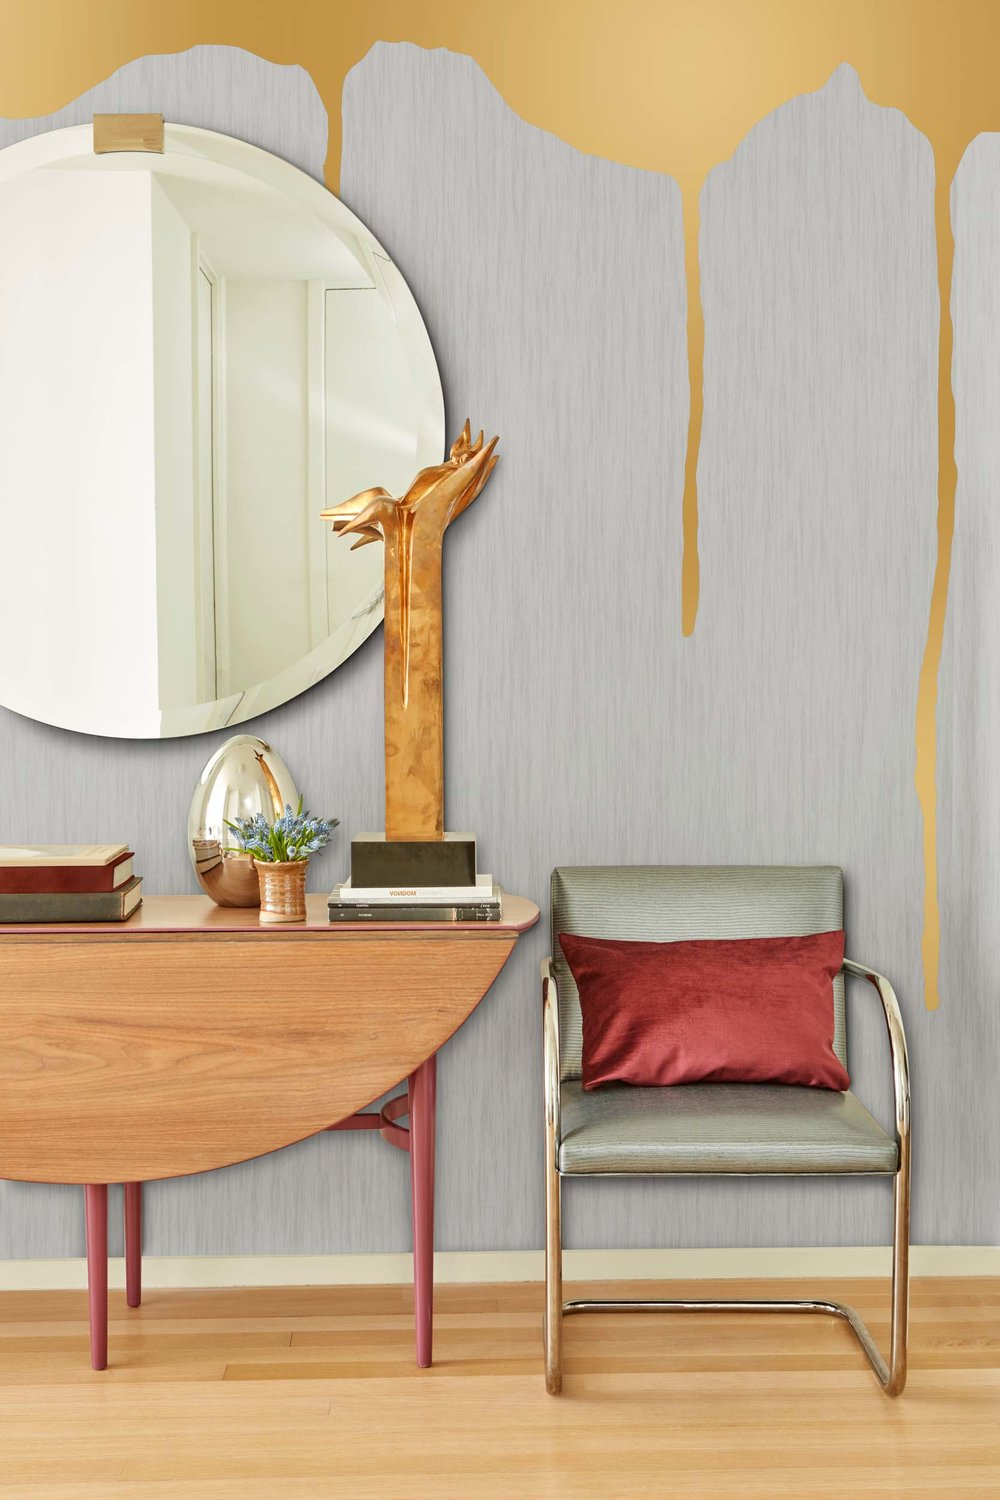 wooden table with single couch, big round mirror hanging on the painted wall